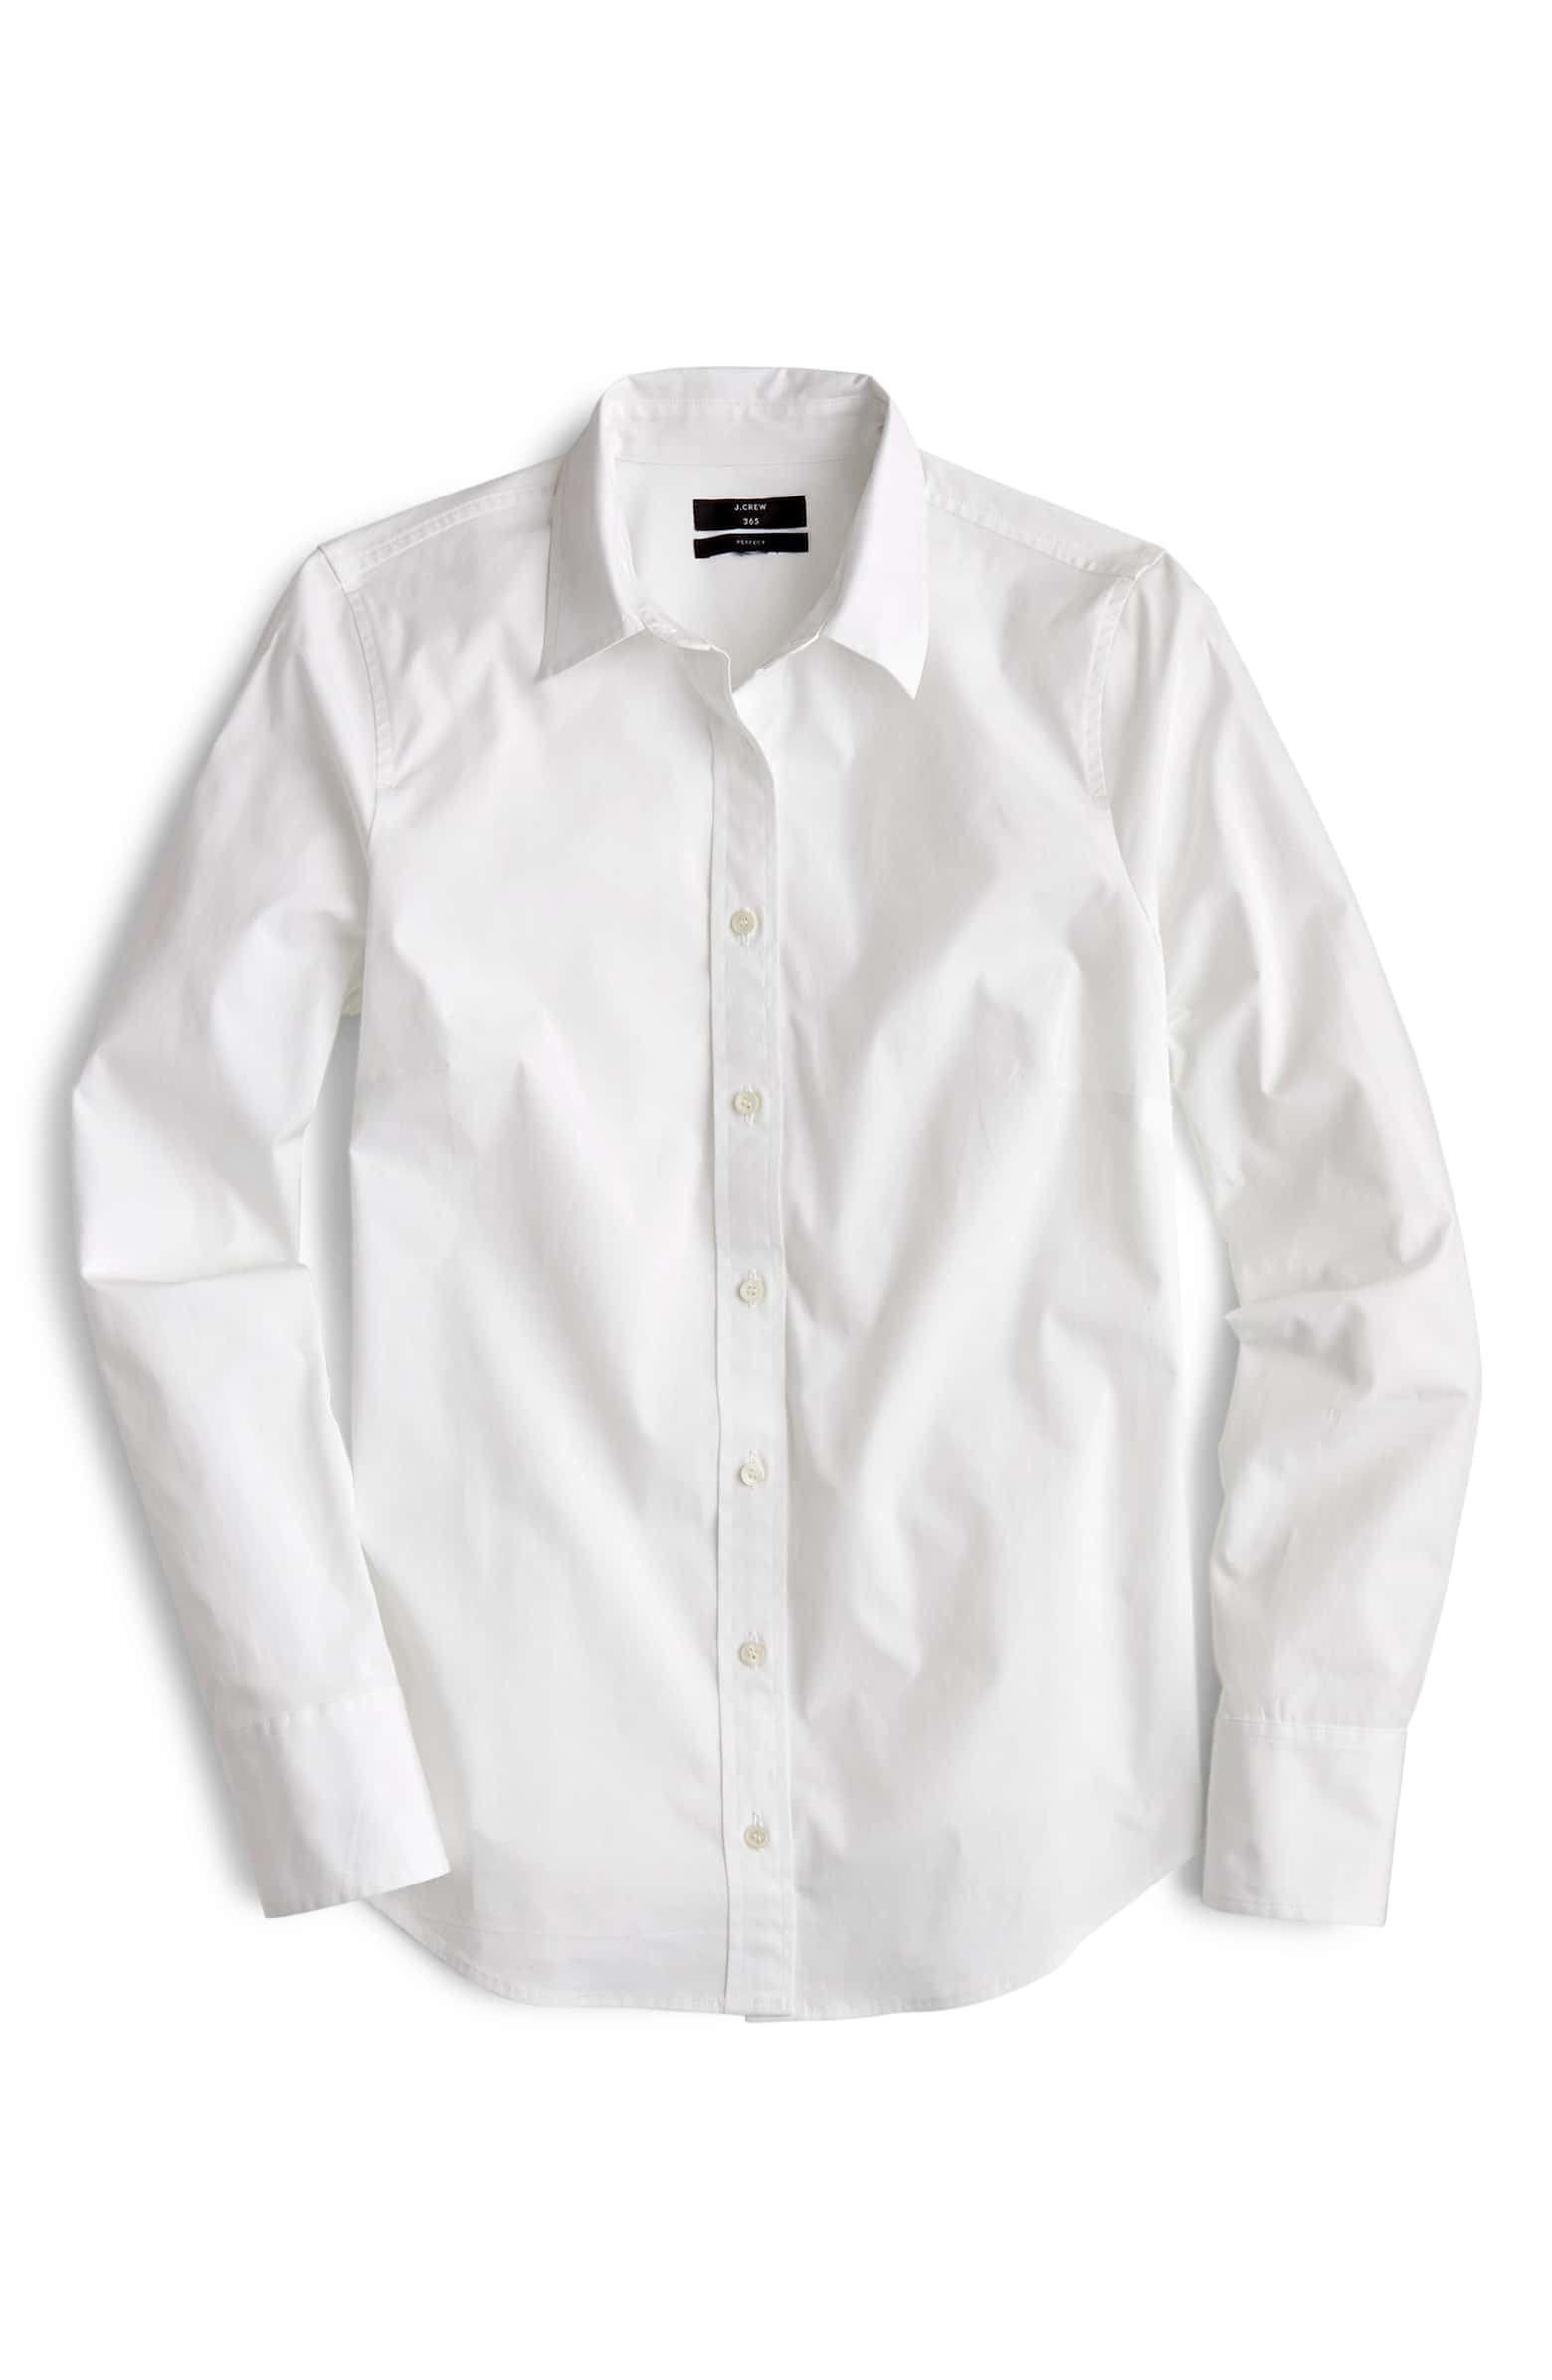 https://shop.nordstrom.com/s/j-crew-slim-stretch-perfect-shirt-regular-petite/5041421?origin=keywordsearch-personalizedsort&breadcrumb=Home%2FAll%20Results&color=white